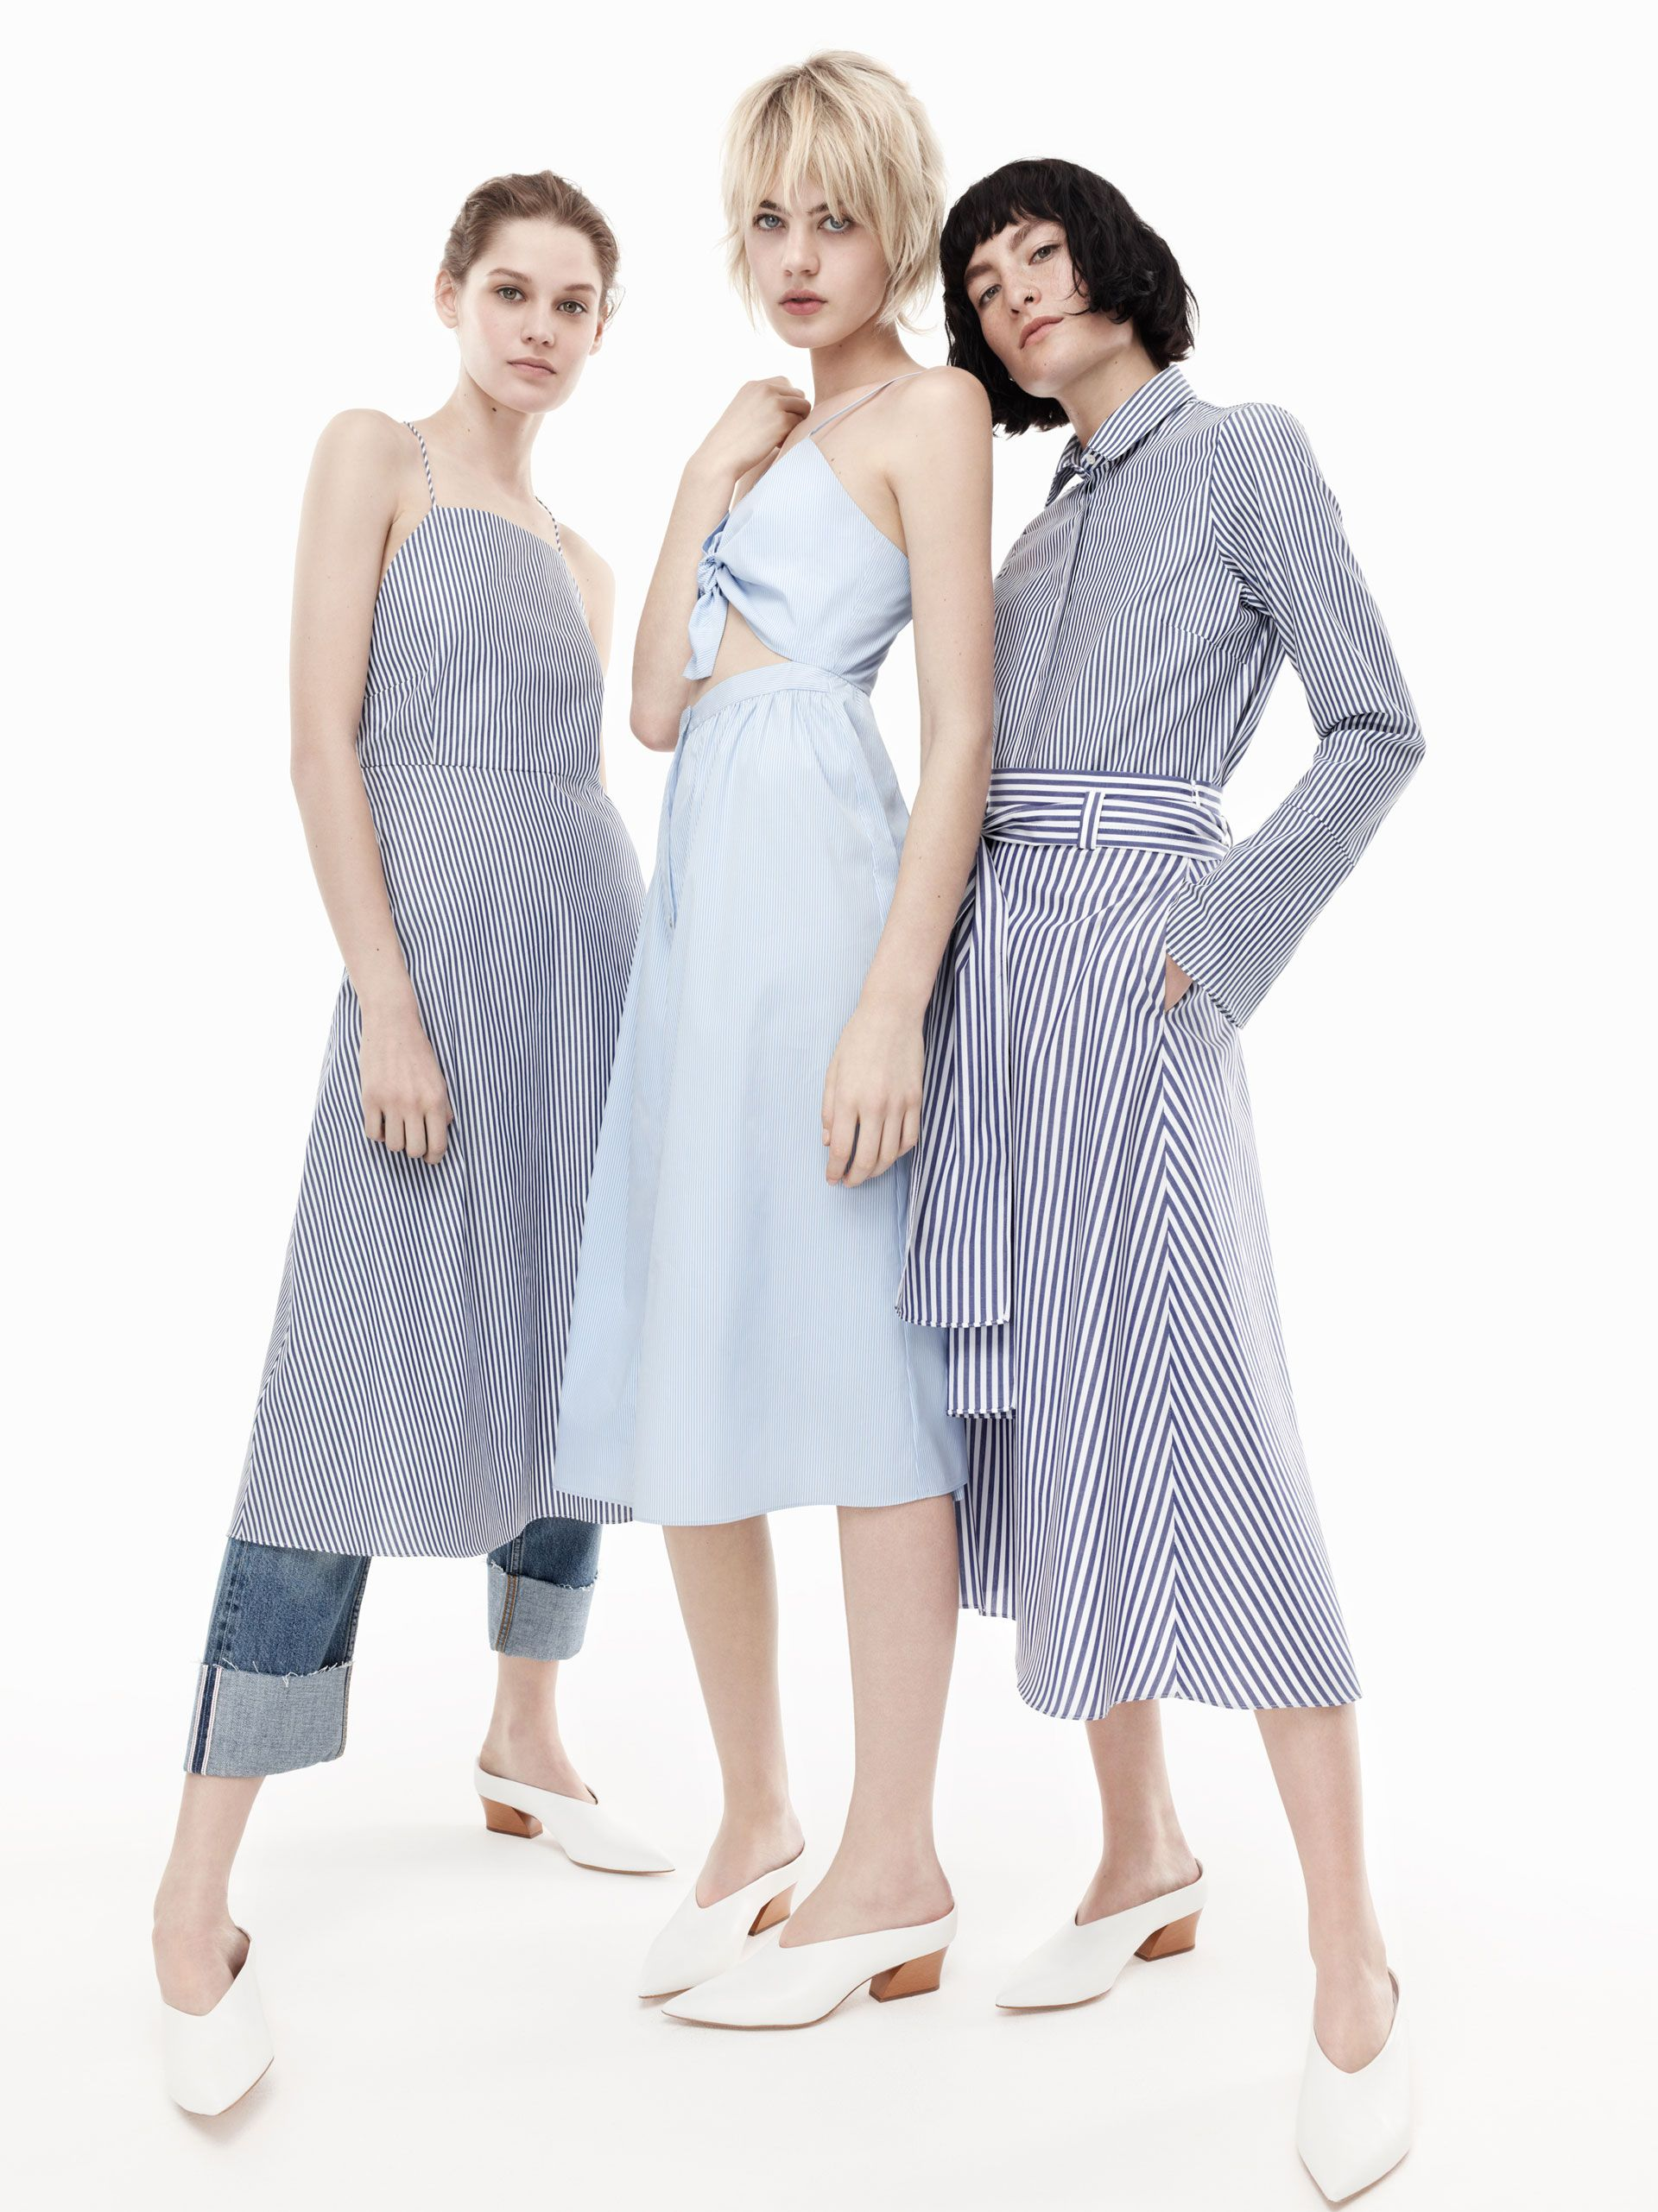 ZARA Woman / THE SPRING REPORT | ss16